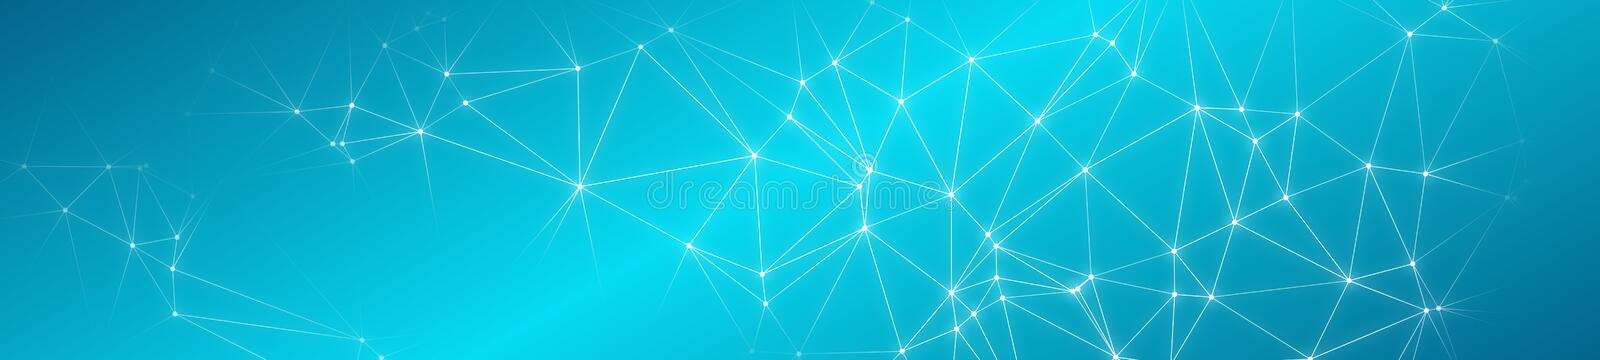 Wide web banner connected lines and circle dots. Modern minimal abstract geometric connections banner backdrop stock image